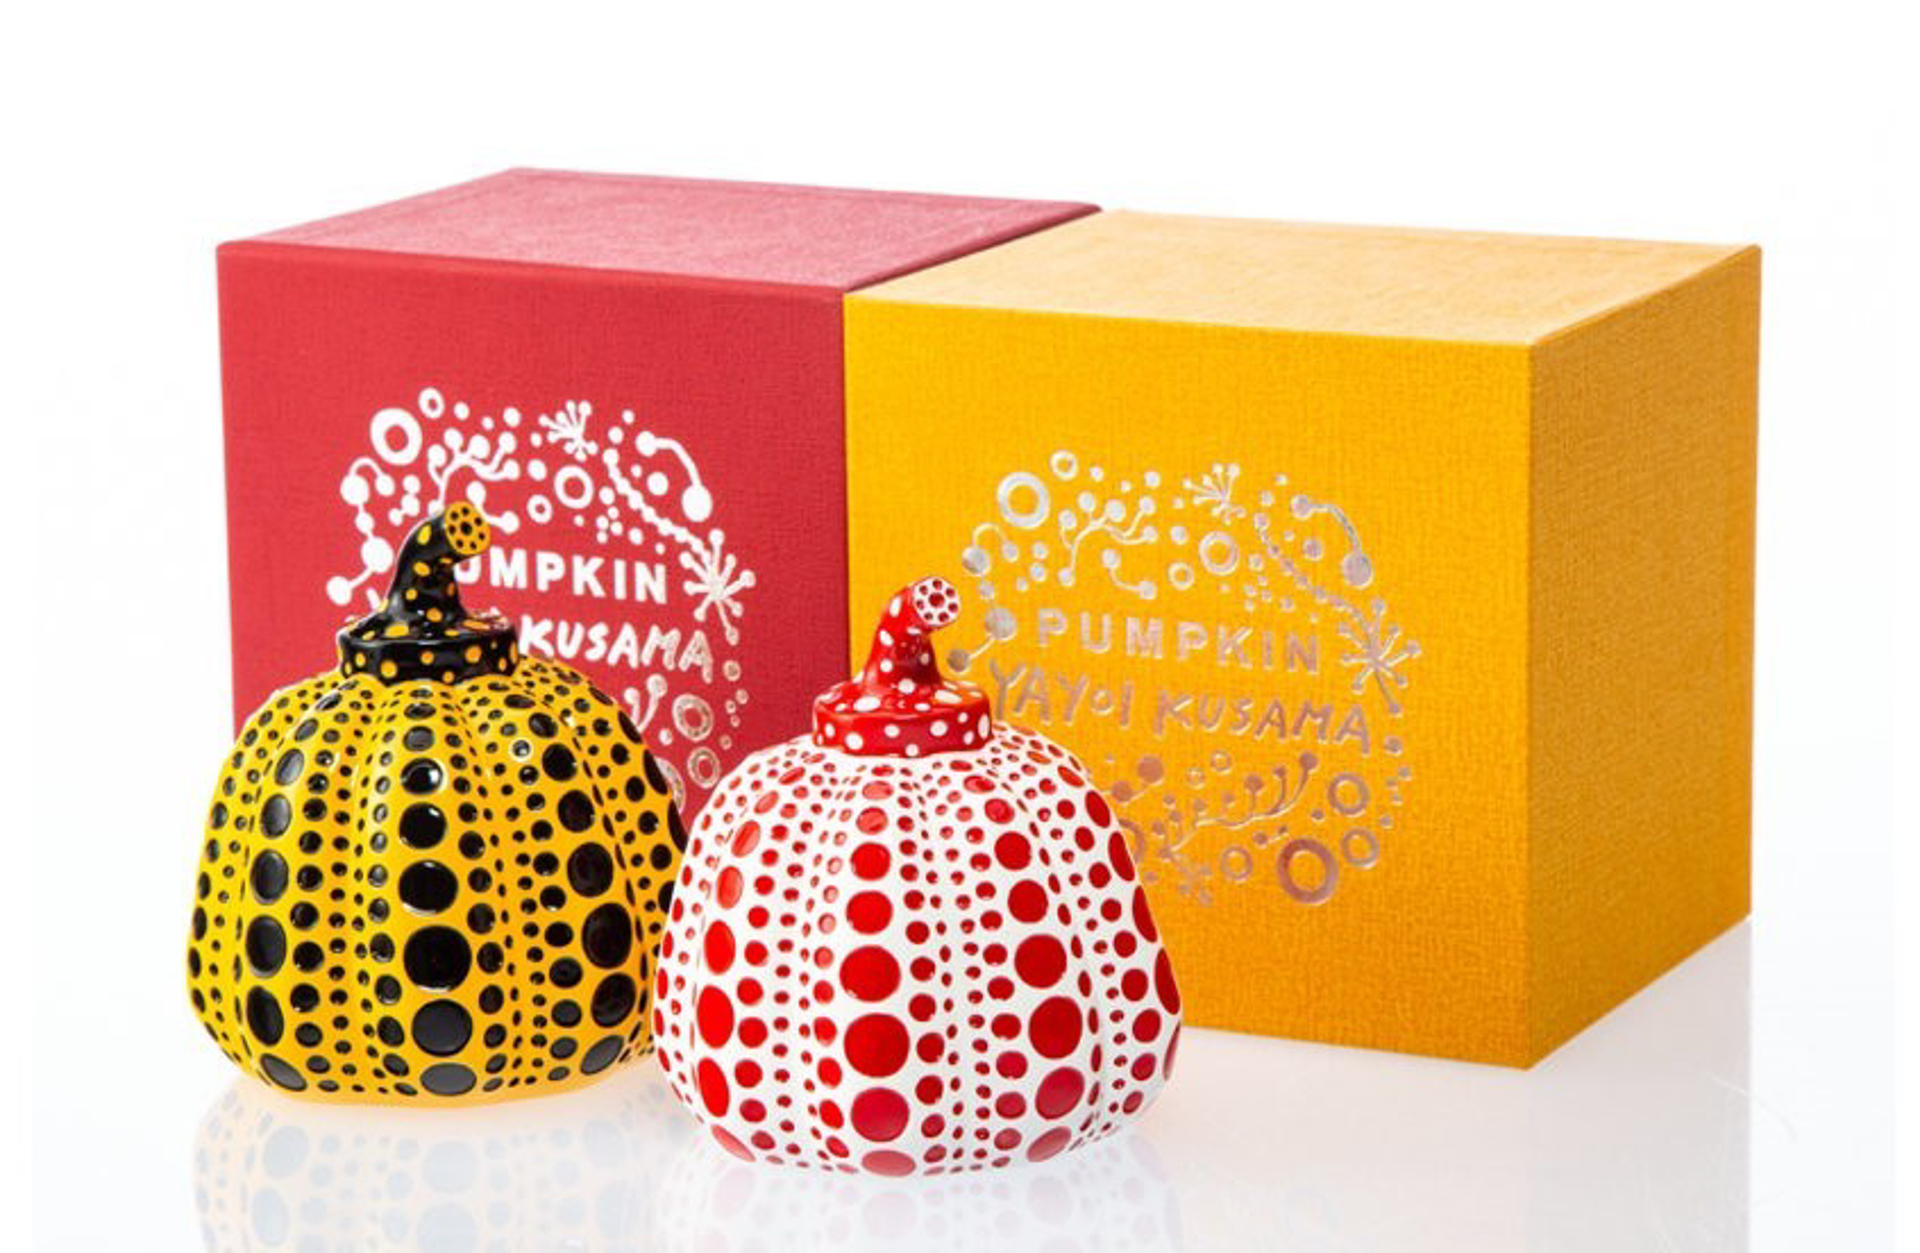 Red and Yellow Pumpkin (Two Works) by Yayoi Kusama